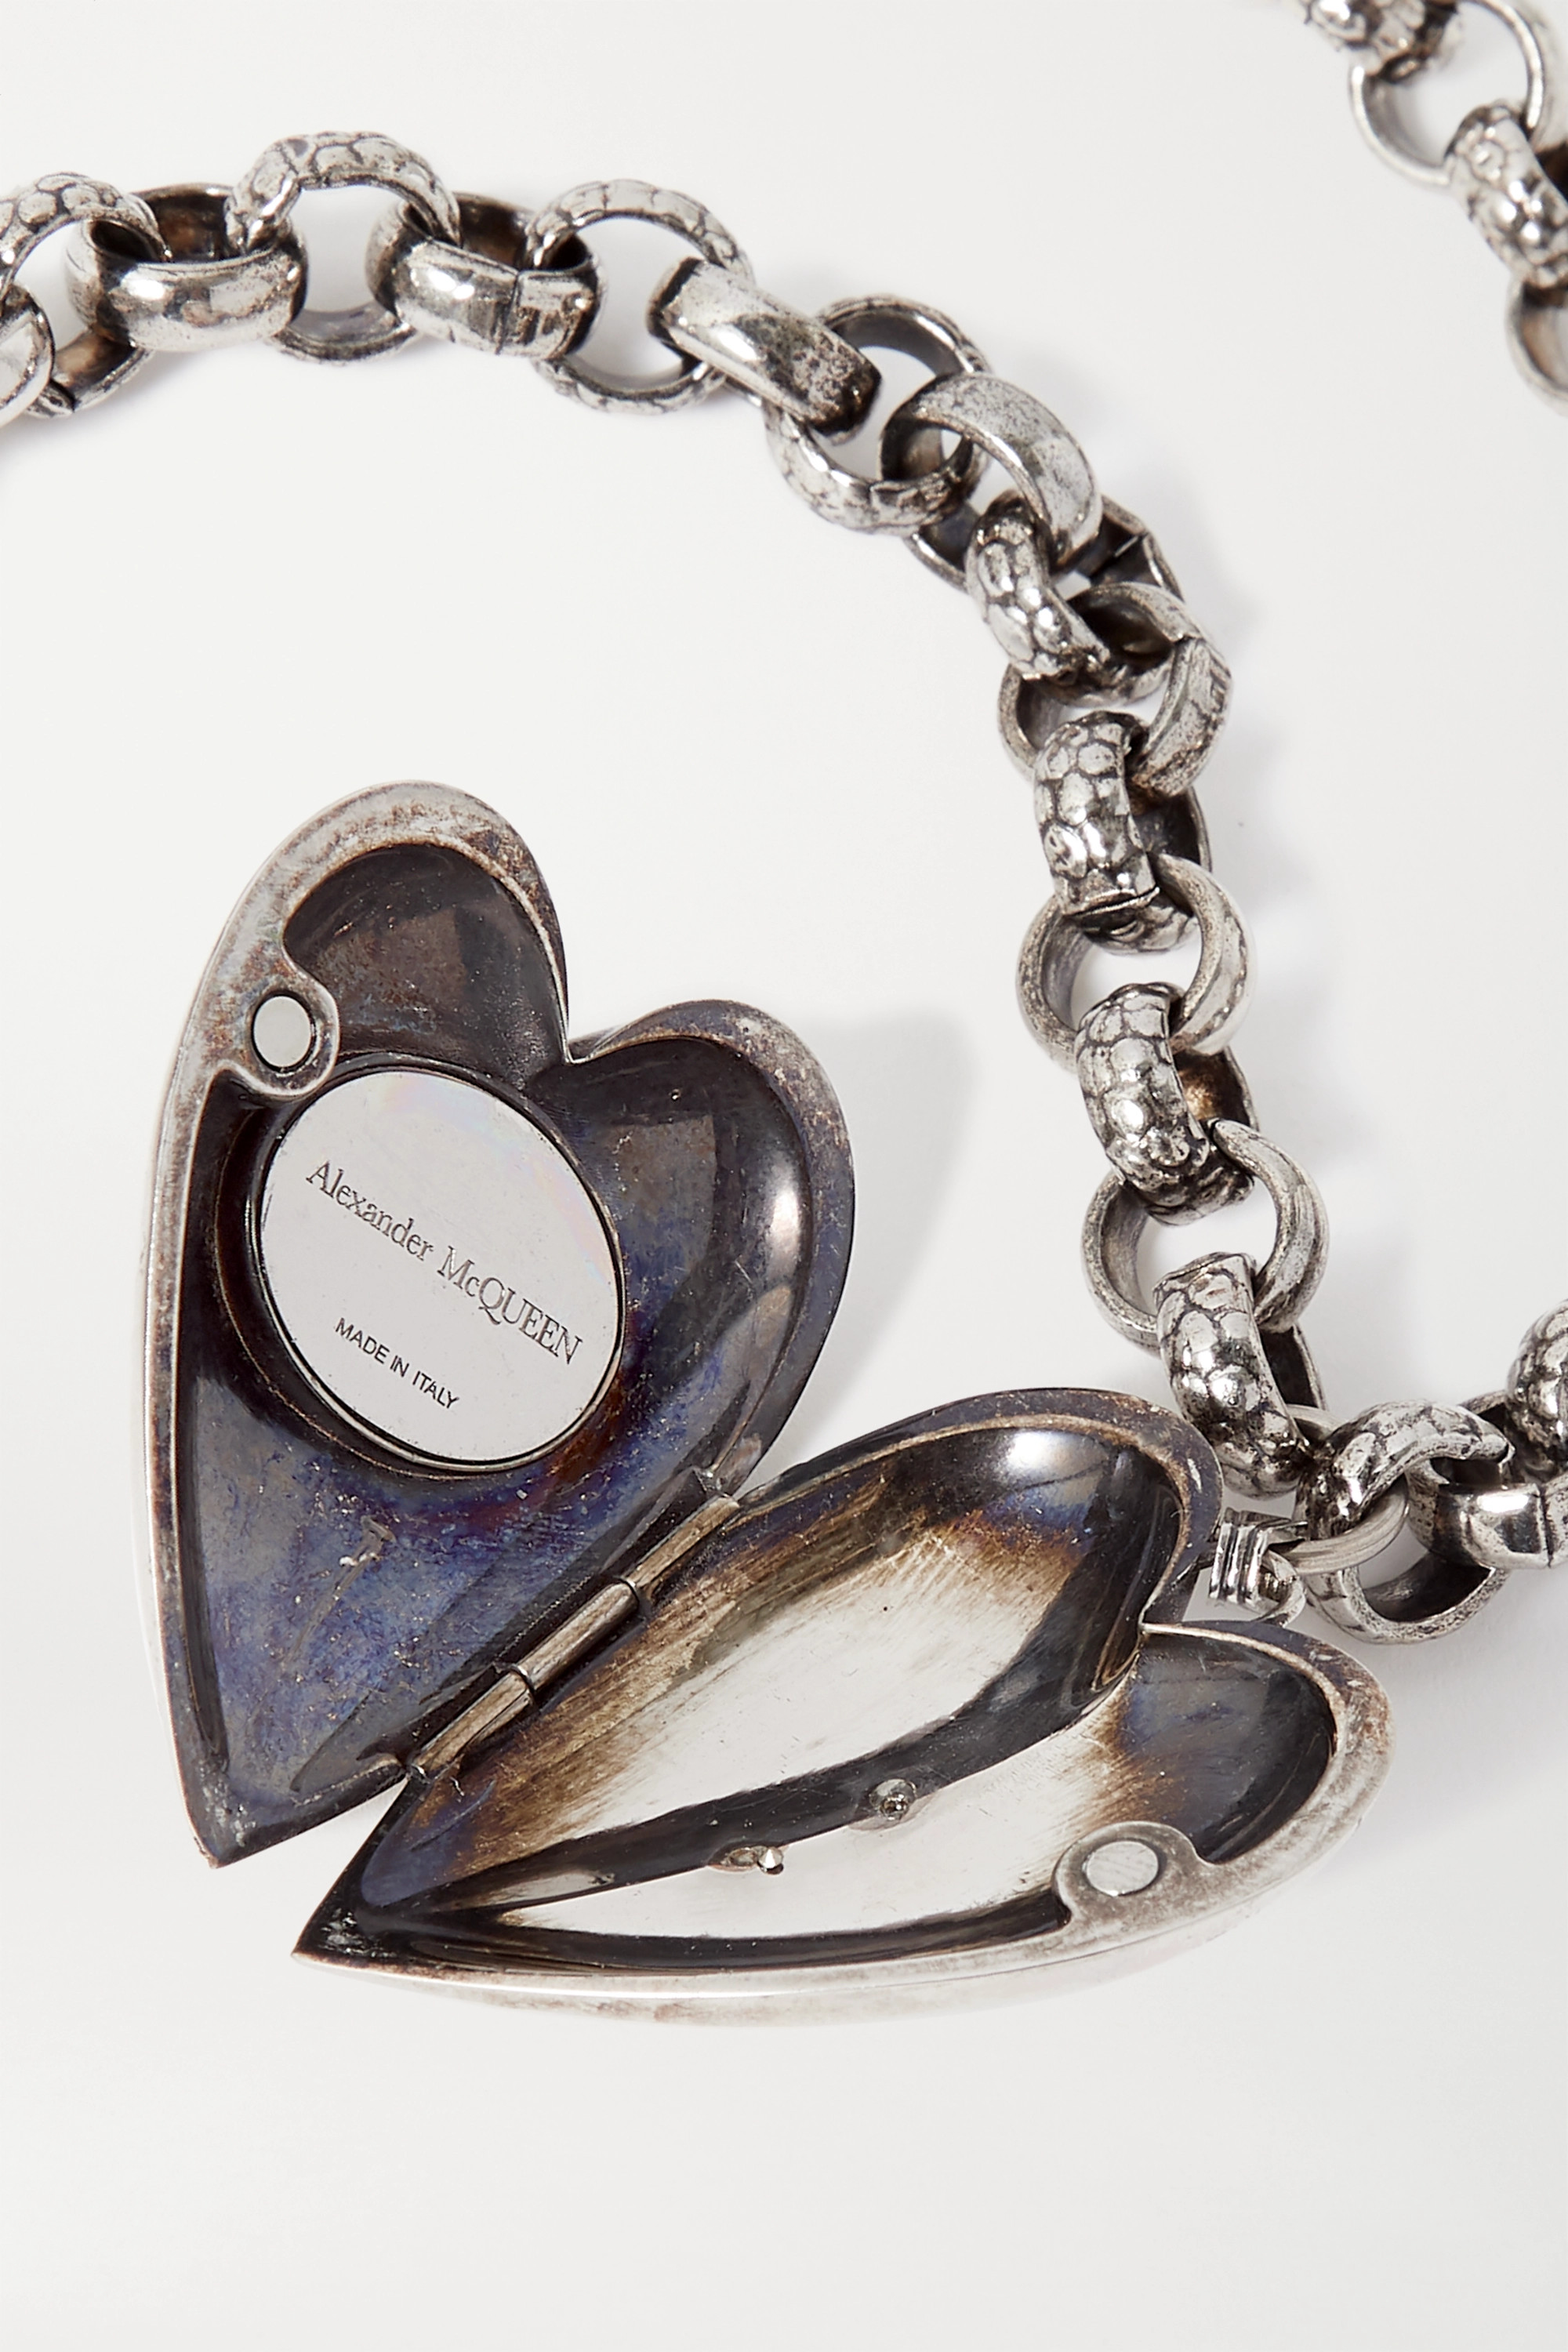 Alexander McQueen Silver- and gold-tone necklace